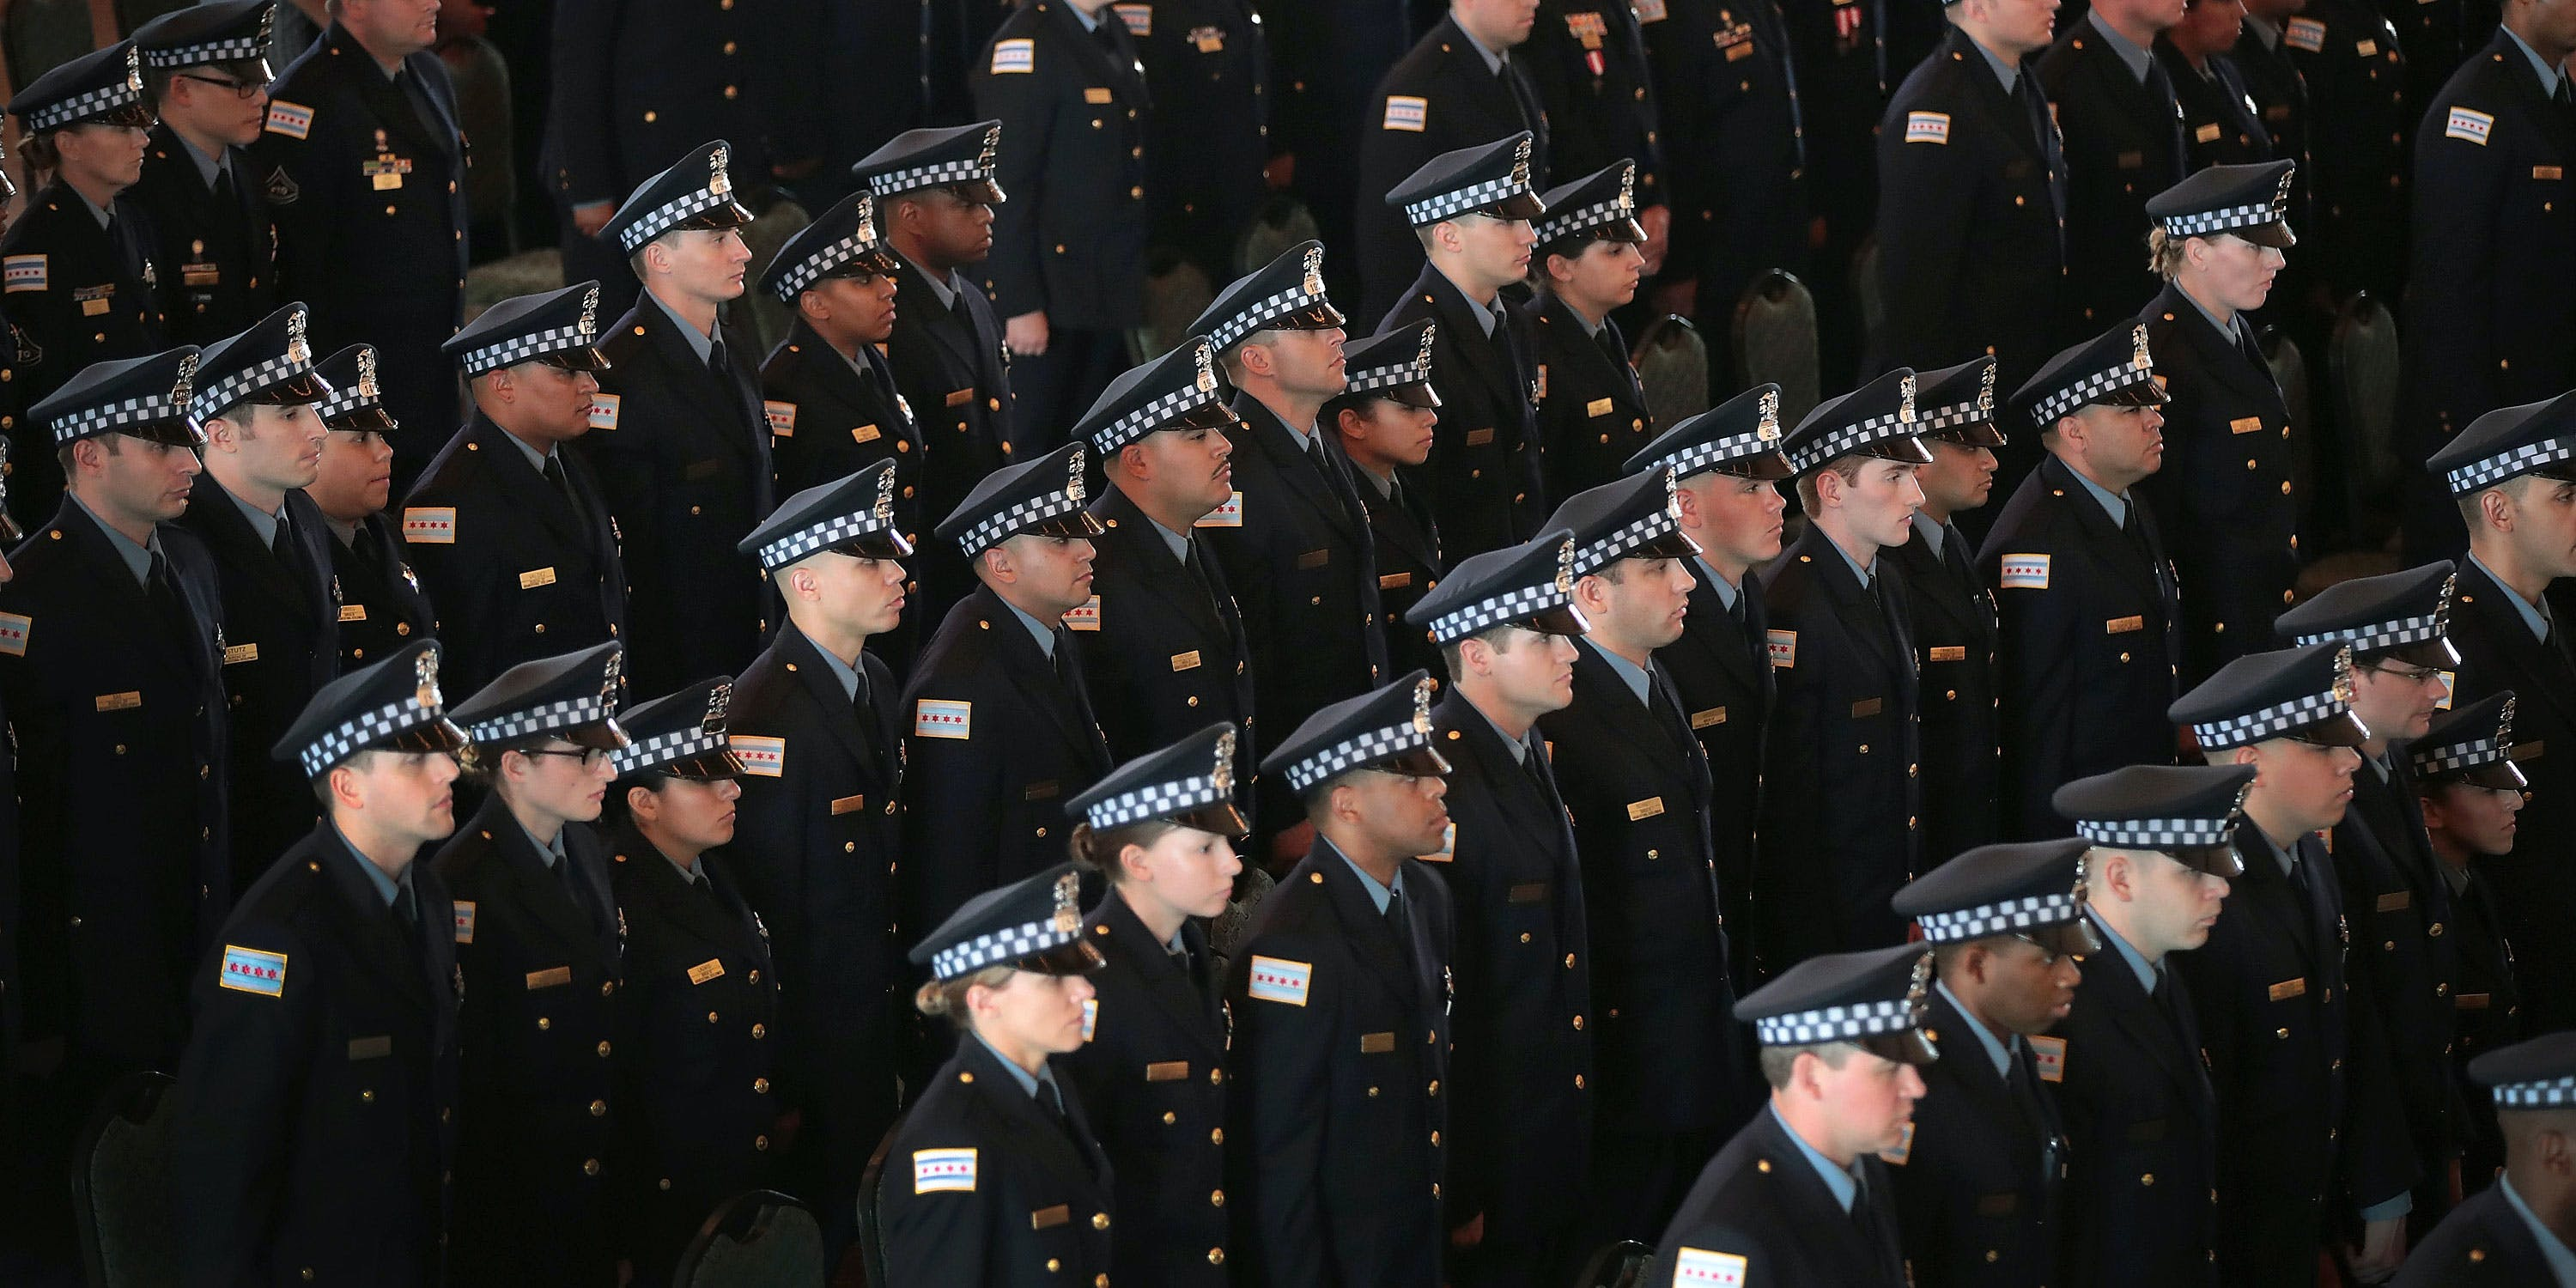 Chicago police officers attend a graduation and promotion ceremony in the Grand Ballroom on Navy Pier on June 15, 2017 in Chicago, Illinois. (Photo by Scott Olson/Getty Images)